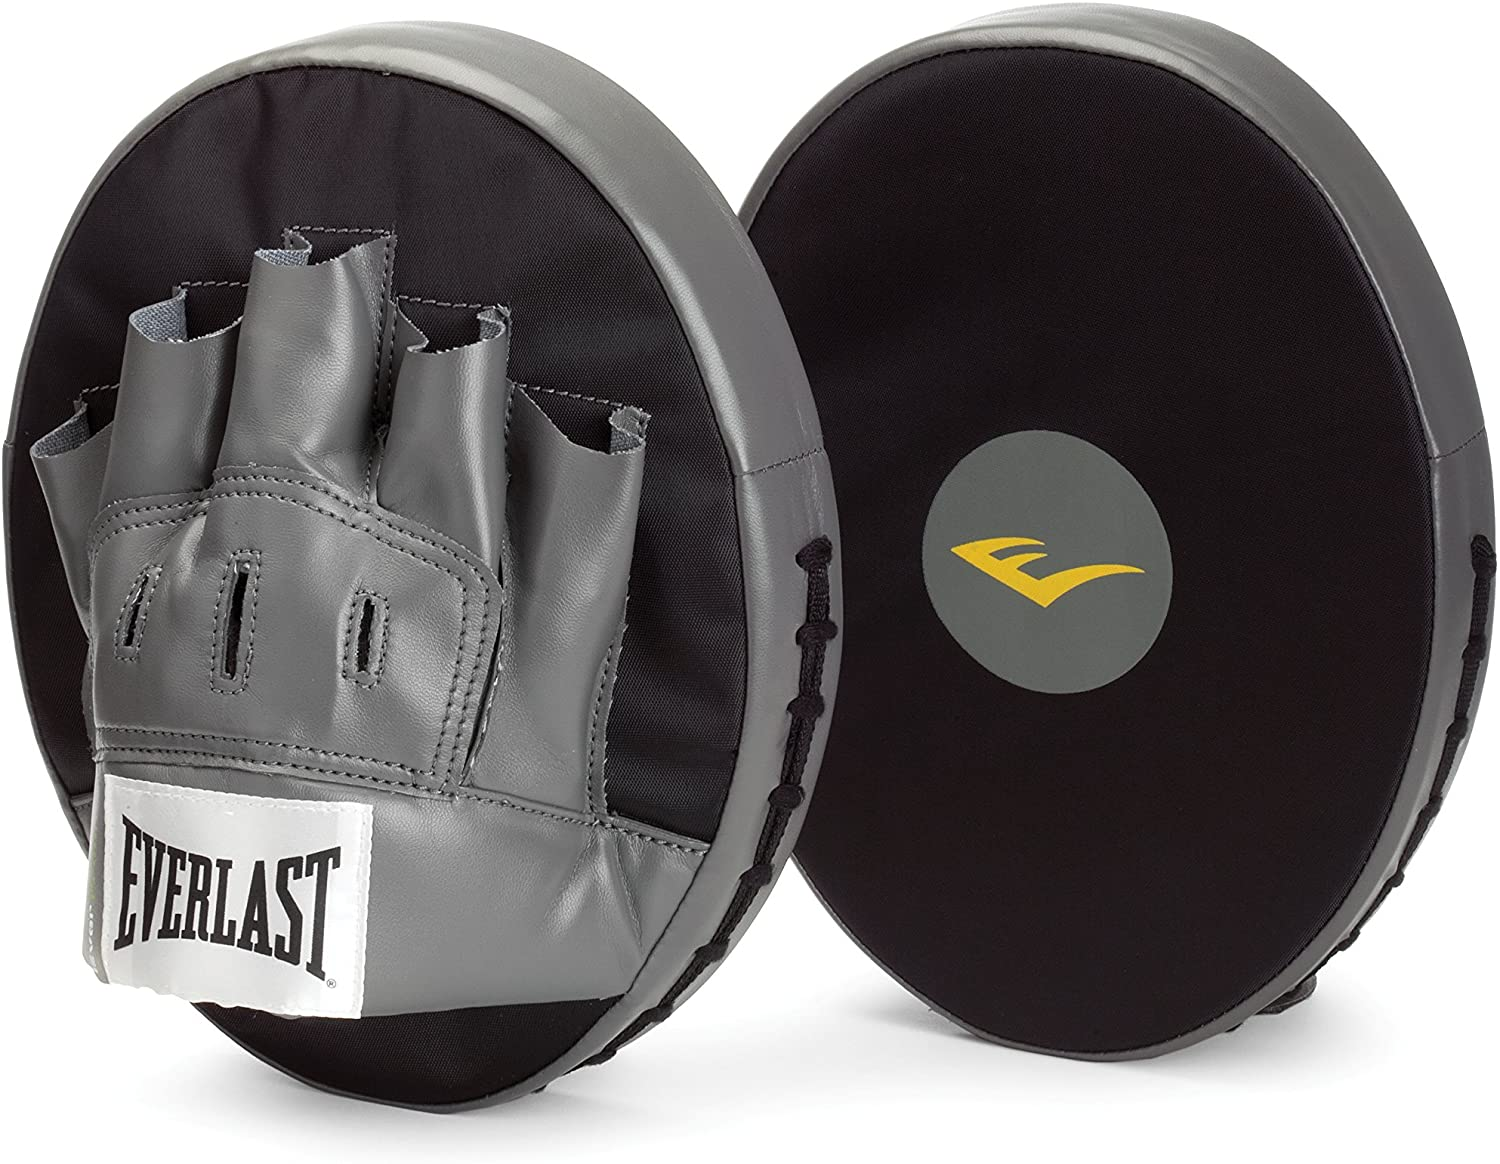 CURVED Meister MMA Boxing Pads NEW PAIR LEATHER FOCUS MITTS w// WRIST SUPPORT